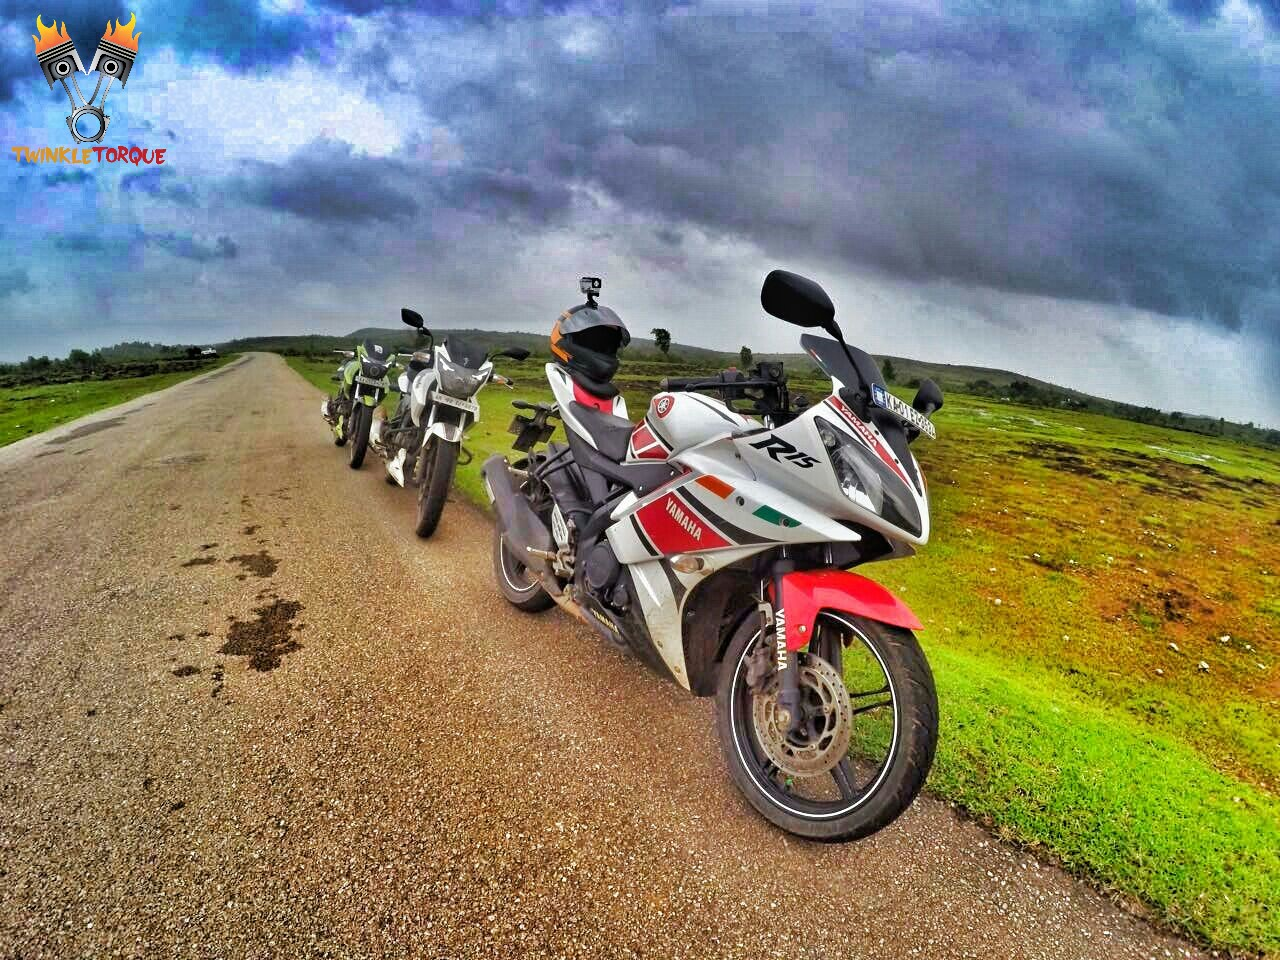 how to plan a long ride on motorcycle twinkle torque